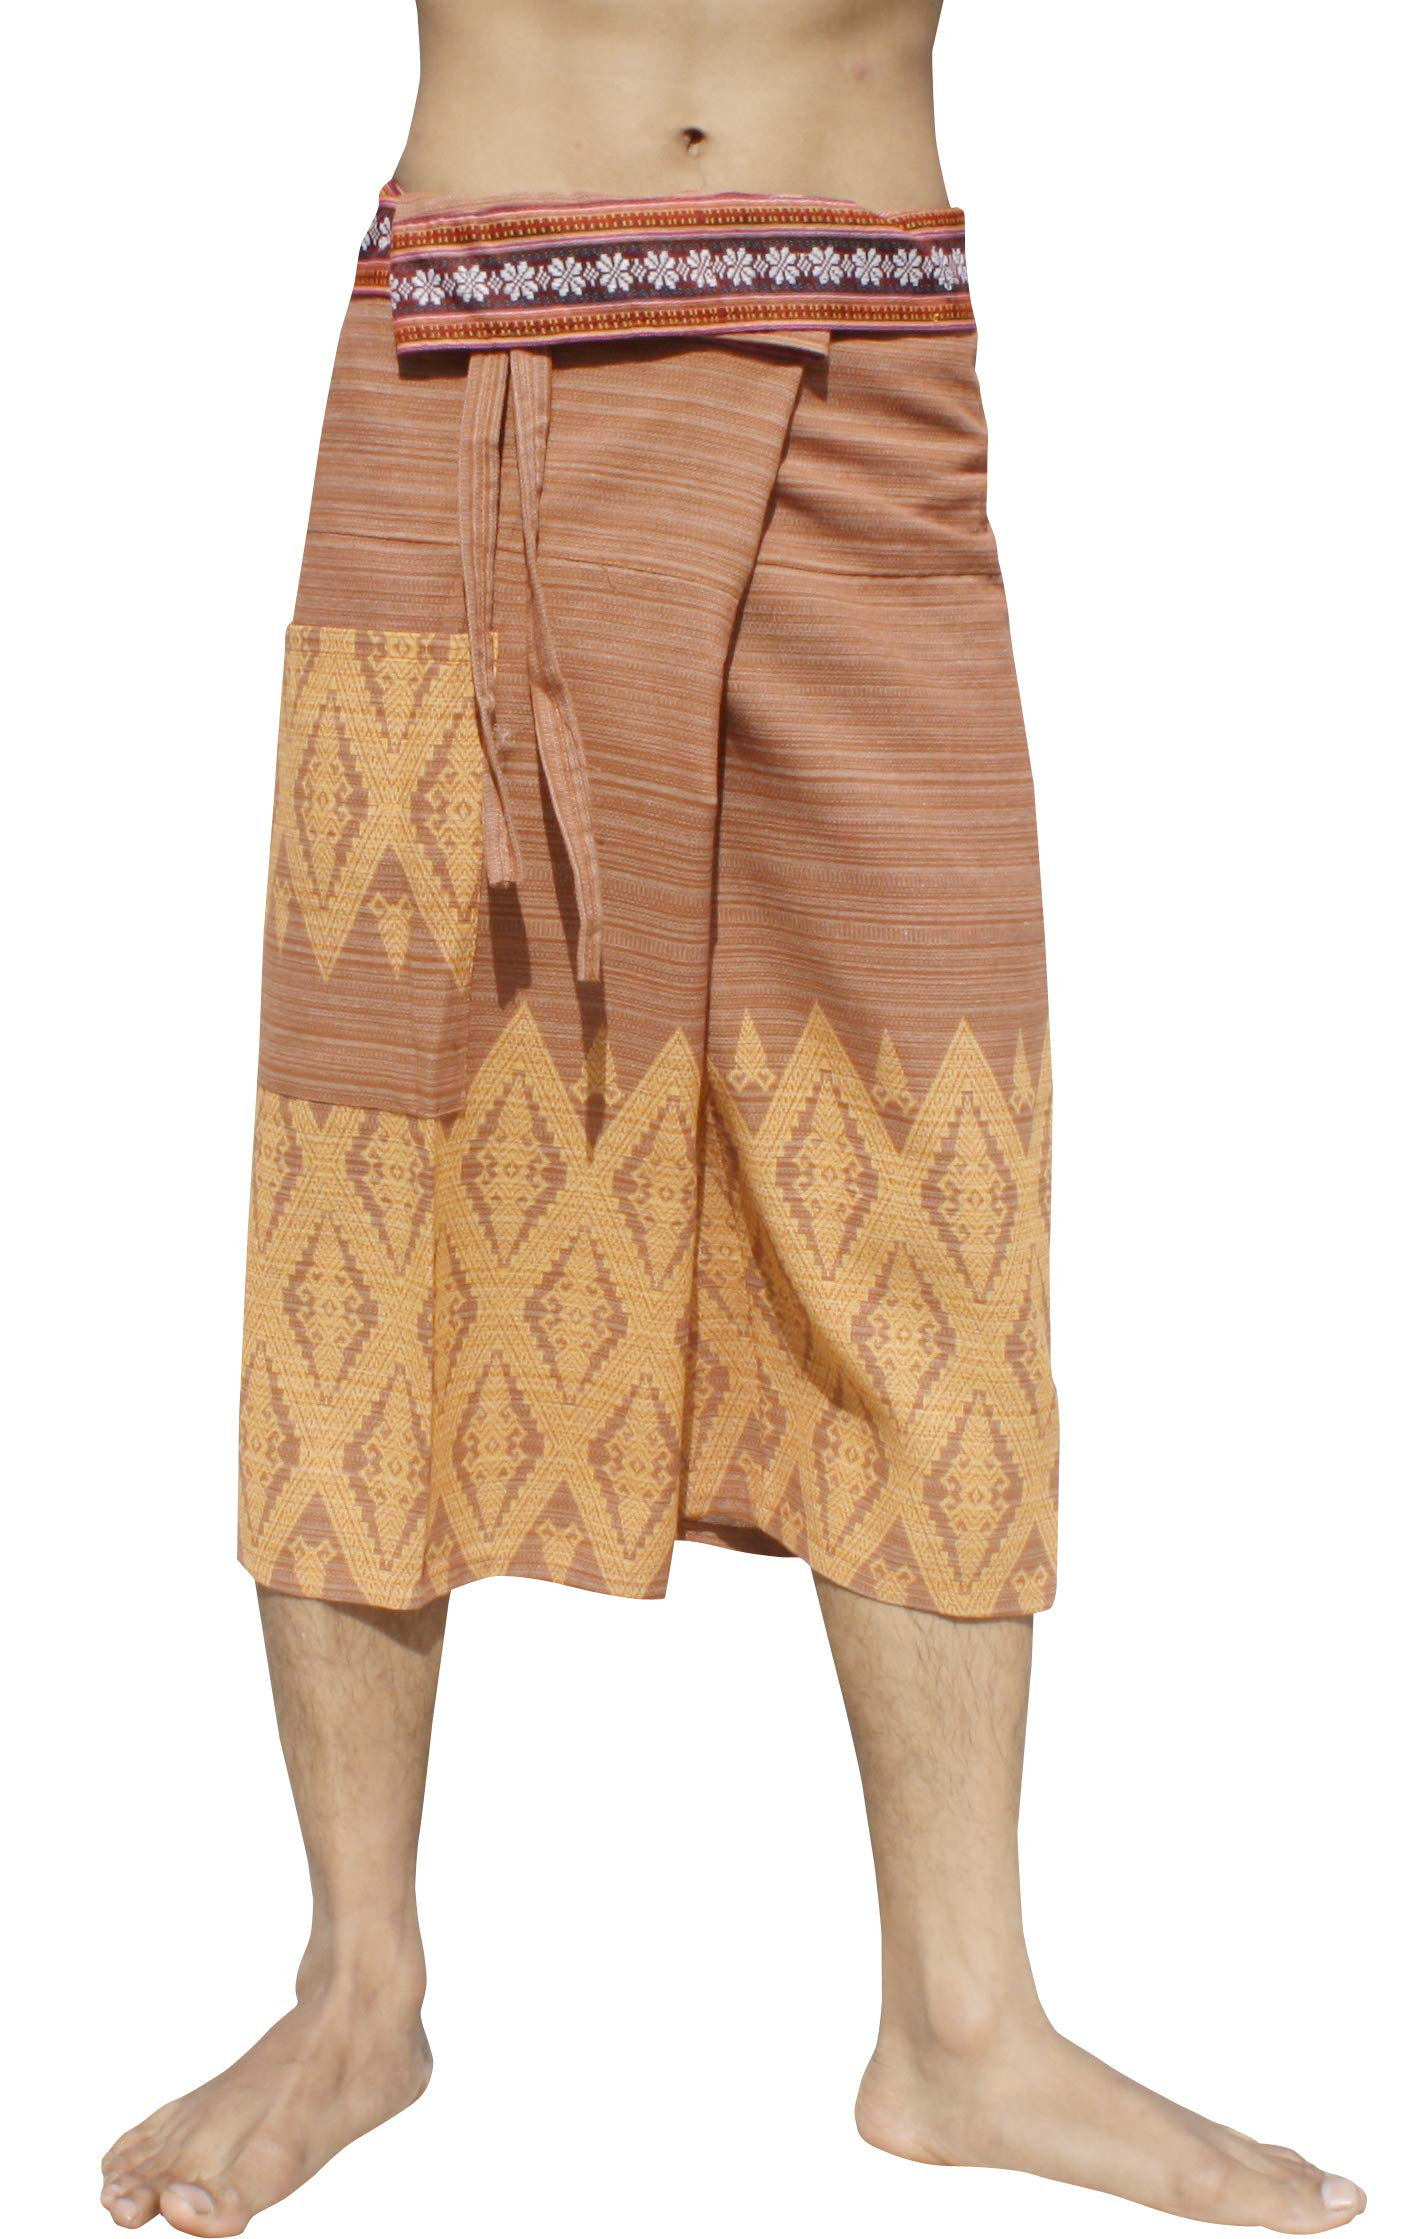 RaanPahMuang Stripe Cotton Fisherman Shorts North Thai Woodblock Artwork and Belt Art, XL/XXL, Bronze Brown by RaanPahMuang